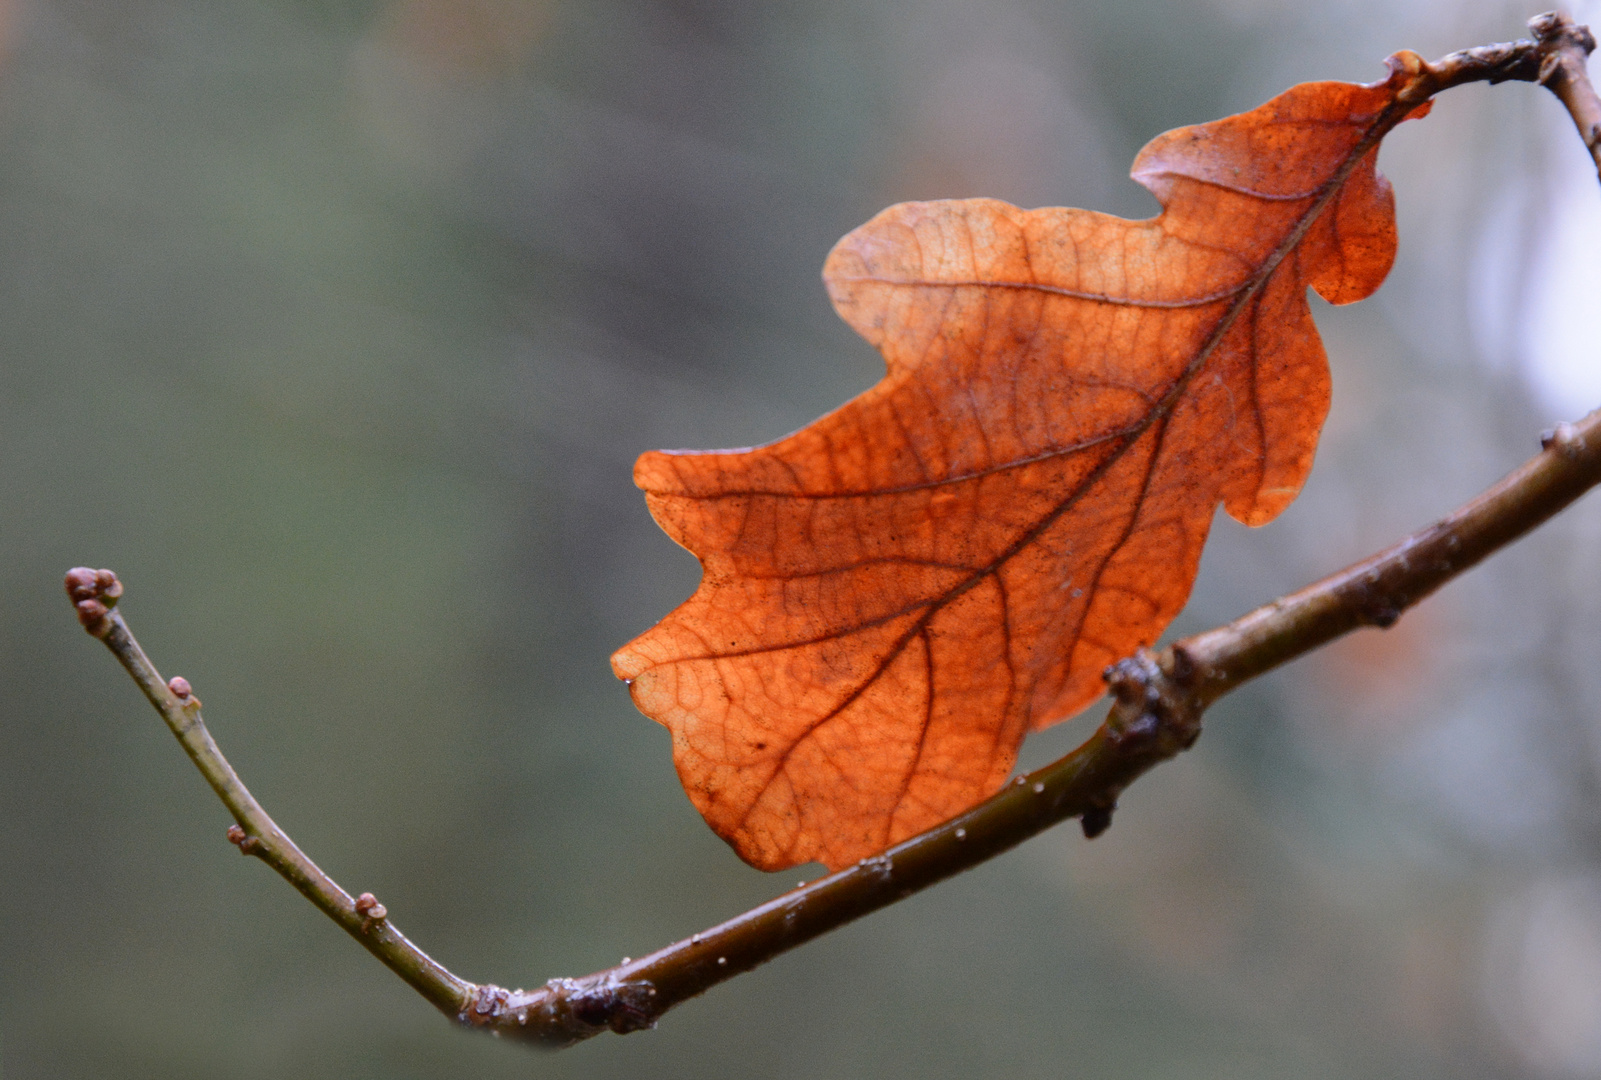 The leaf against the light